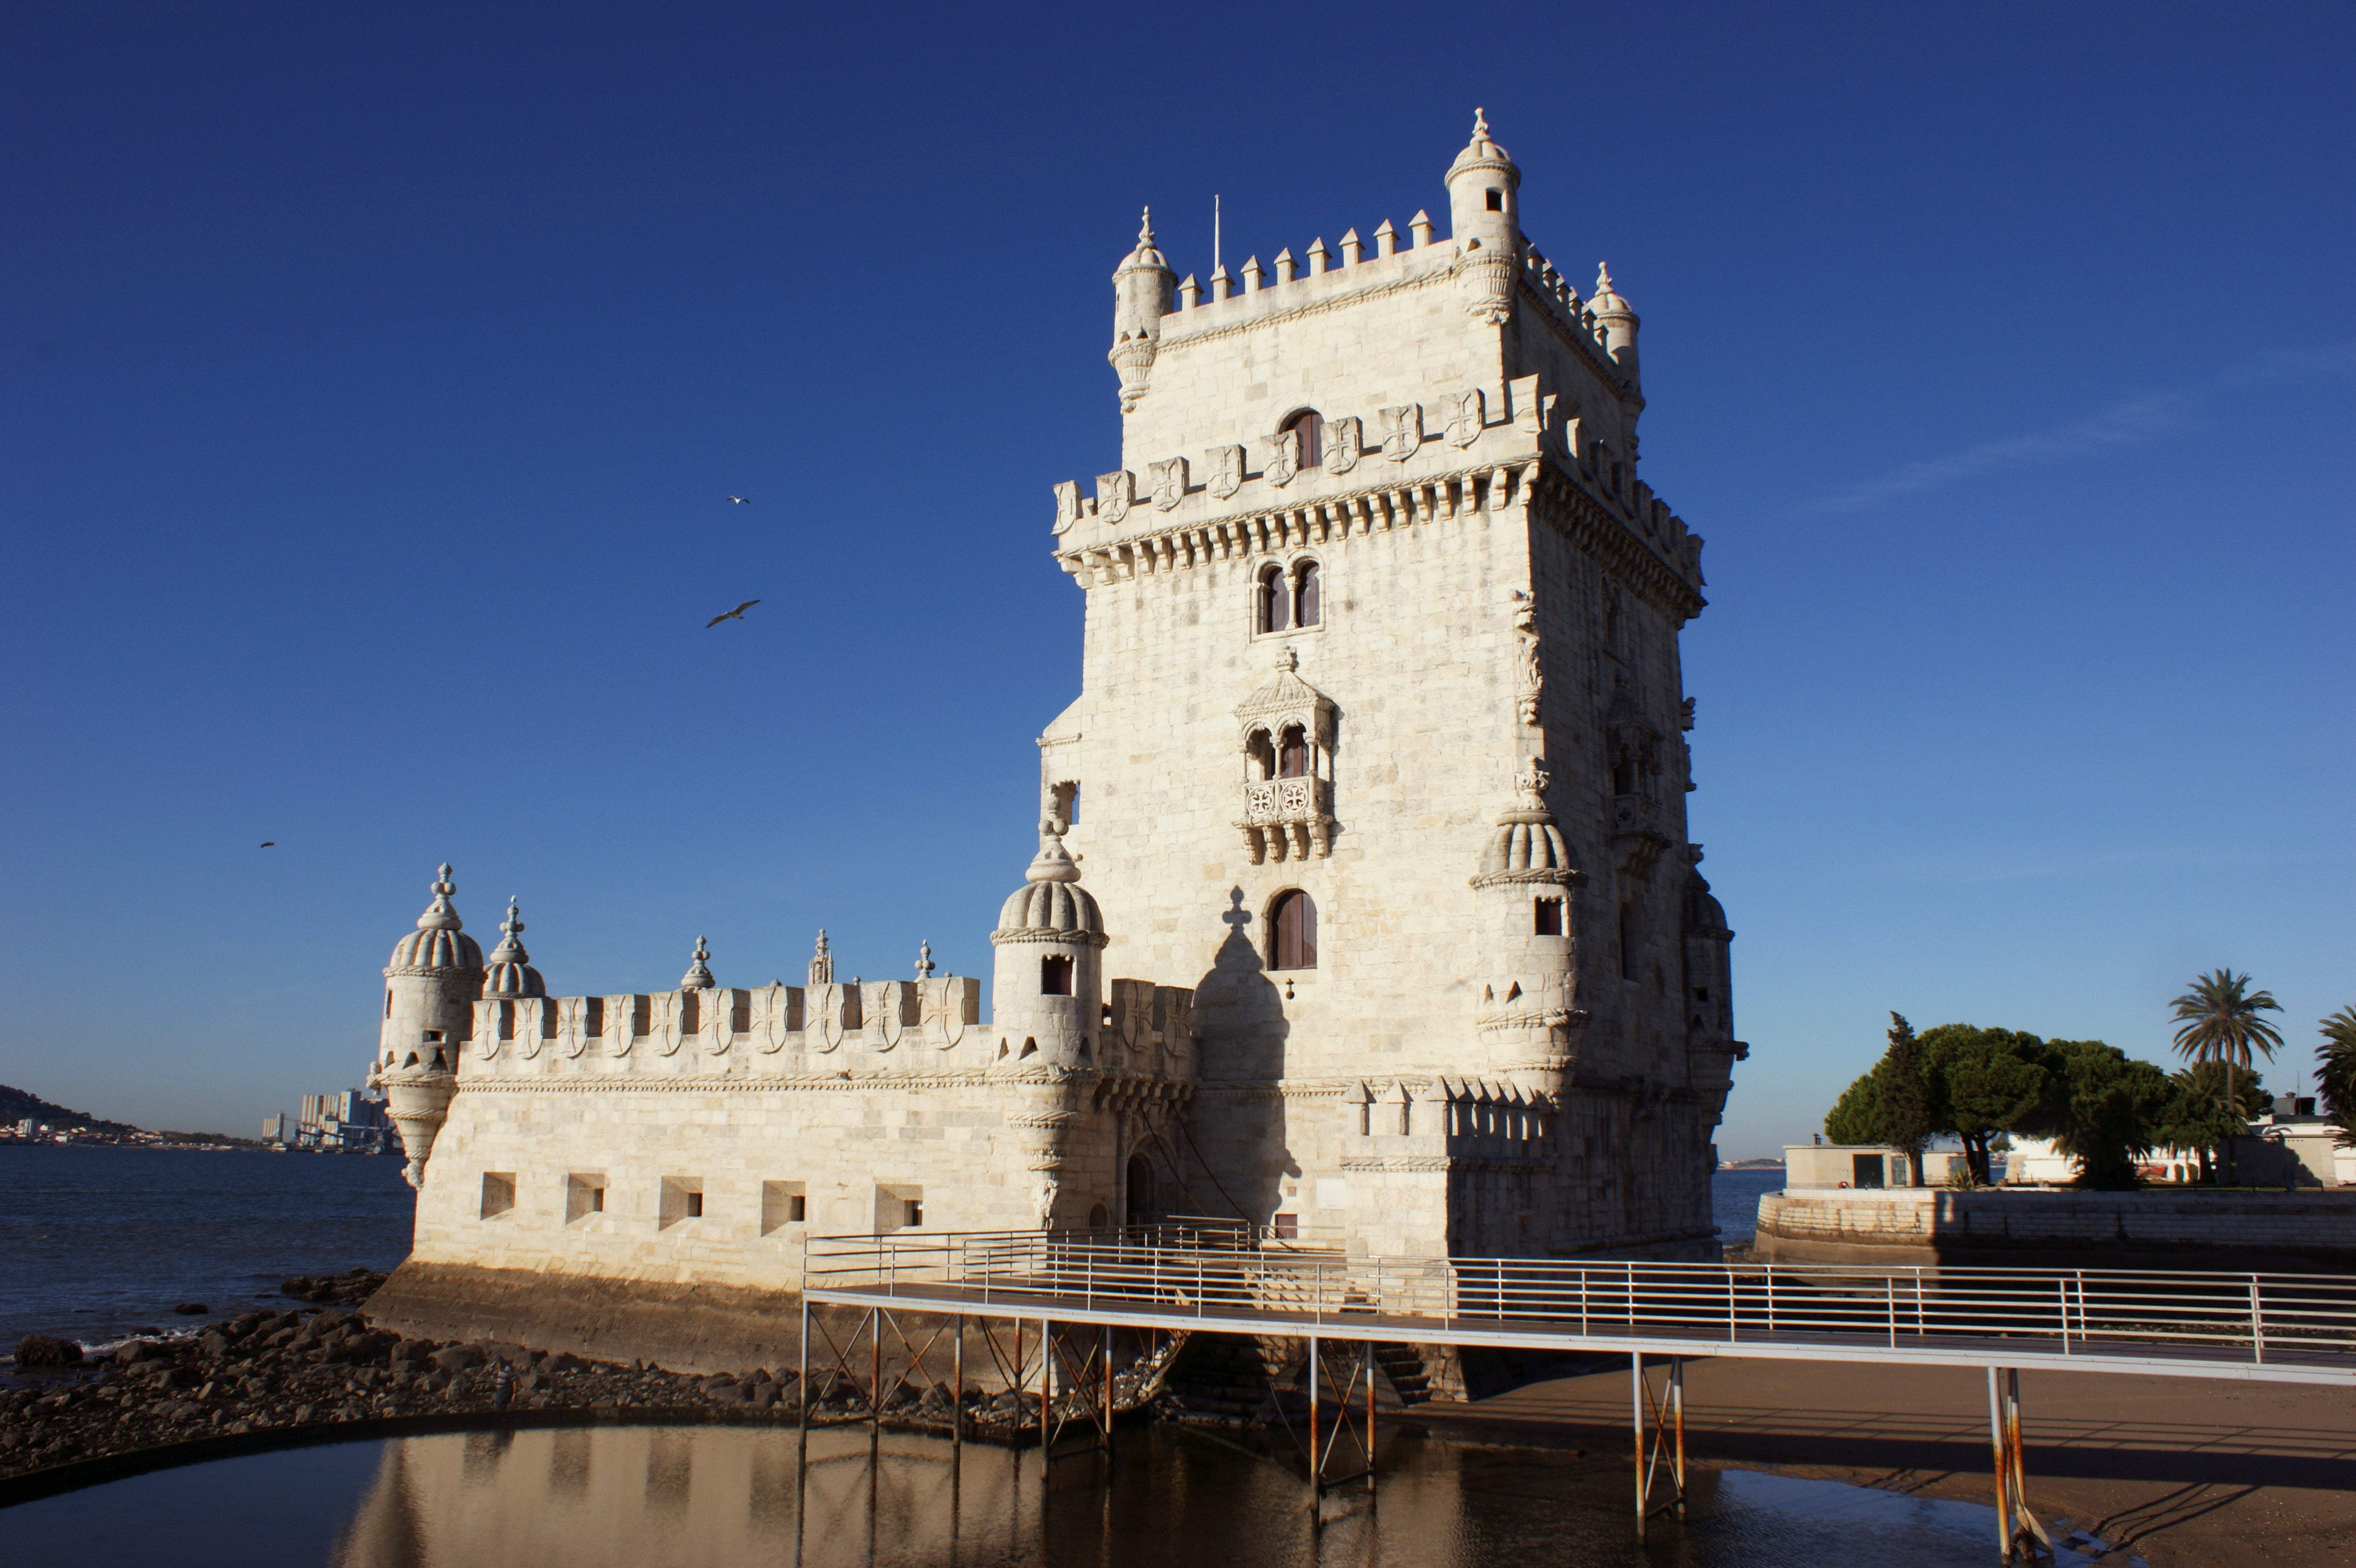 Reflection in Belém Tower